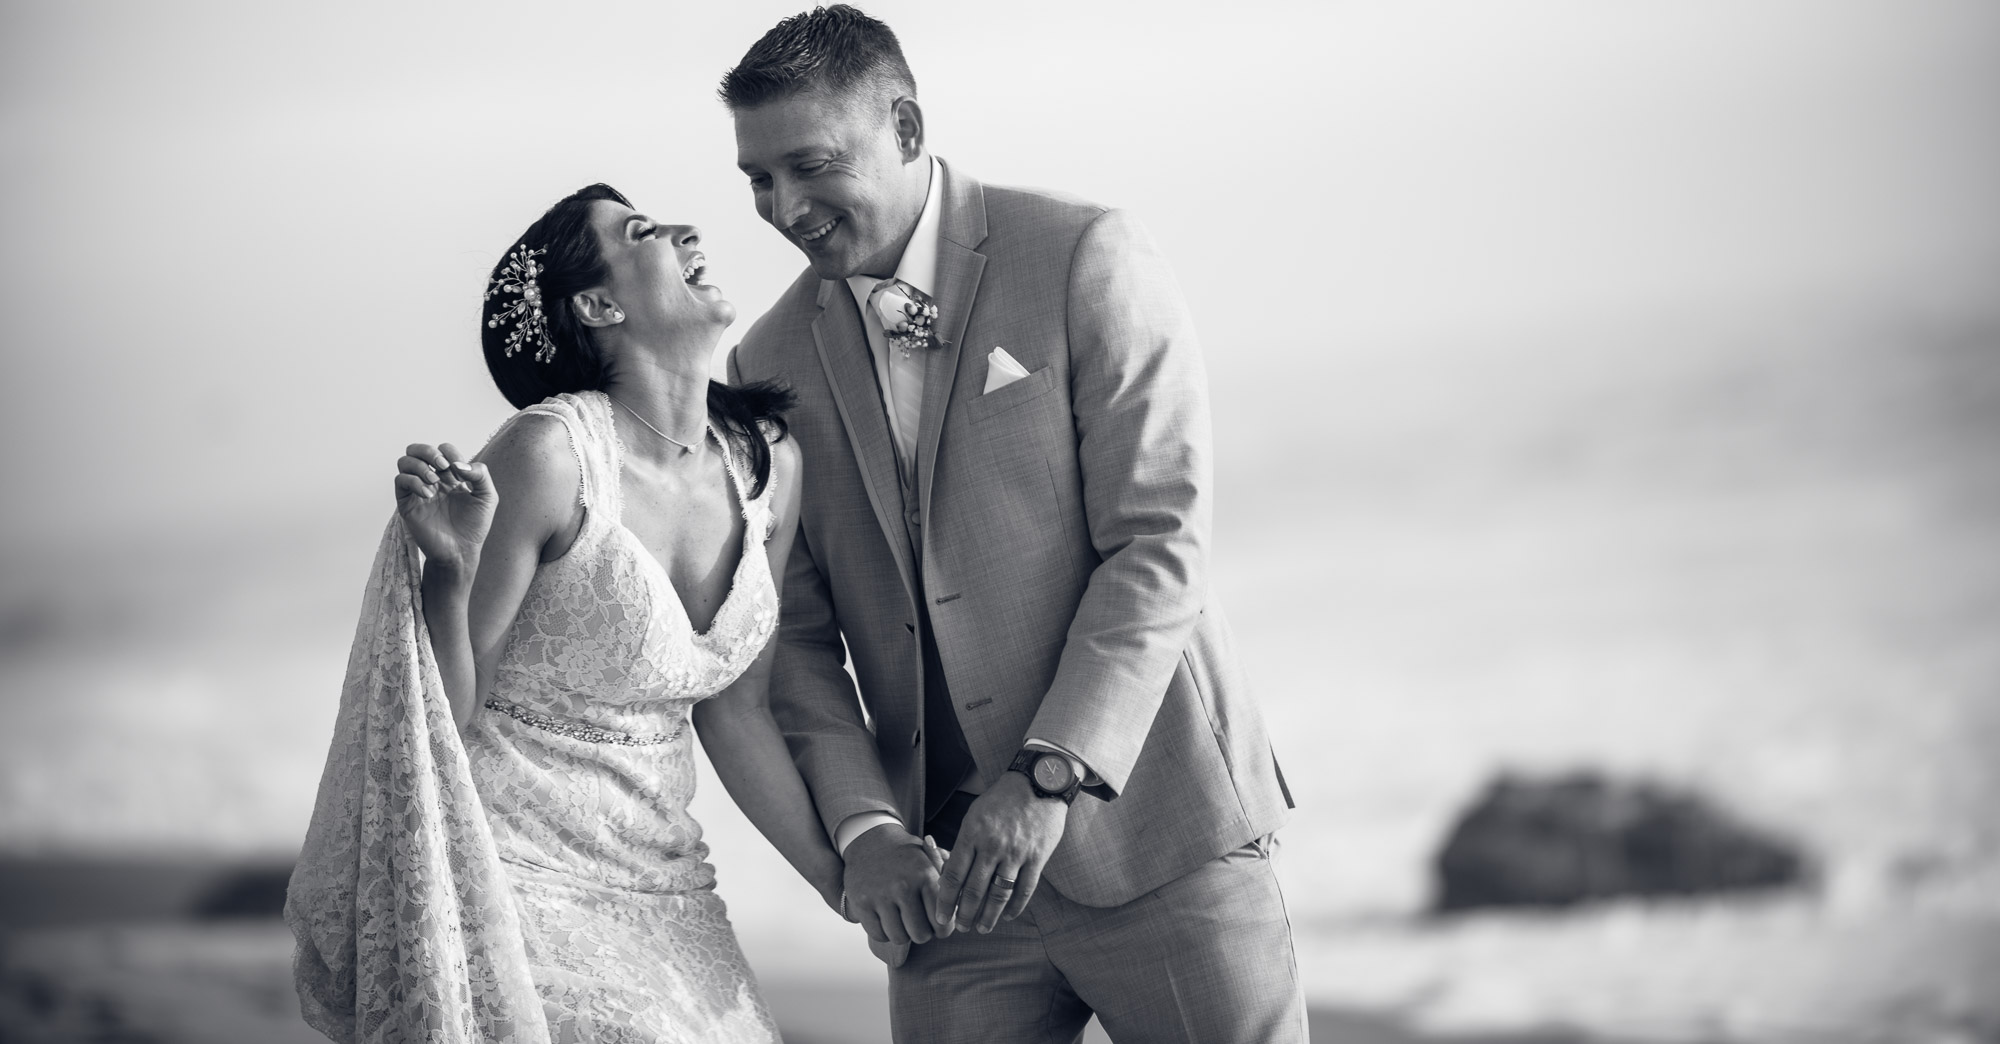 Laura & Danny's – The Sunset Restaurant Beach Wedding Malibu featured slider image